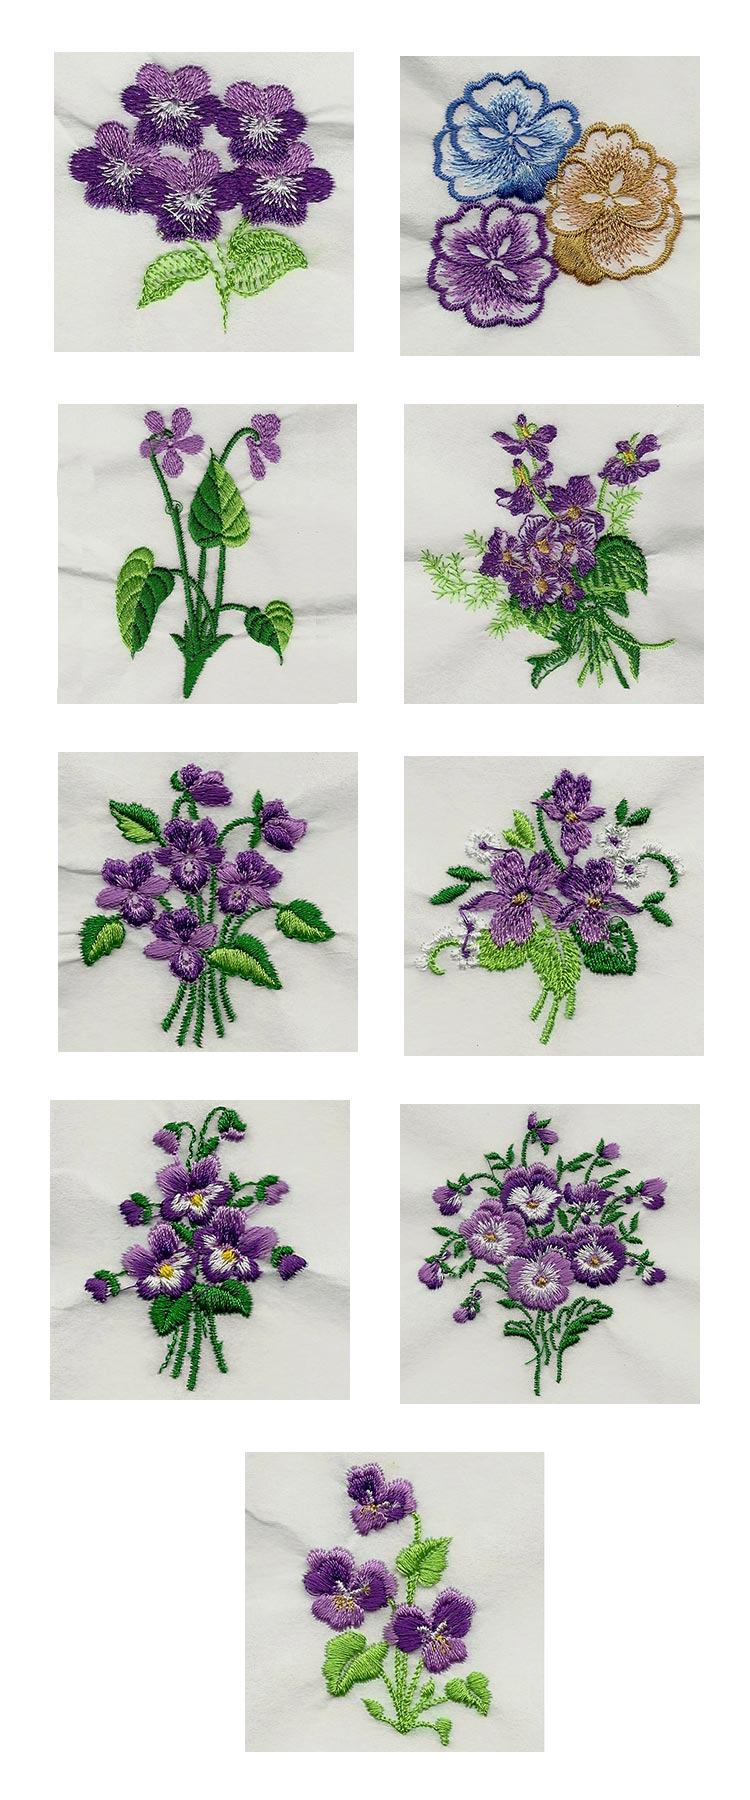 Pansies and Violets 2 Embroidery Machine Design Details